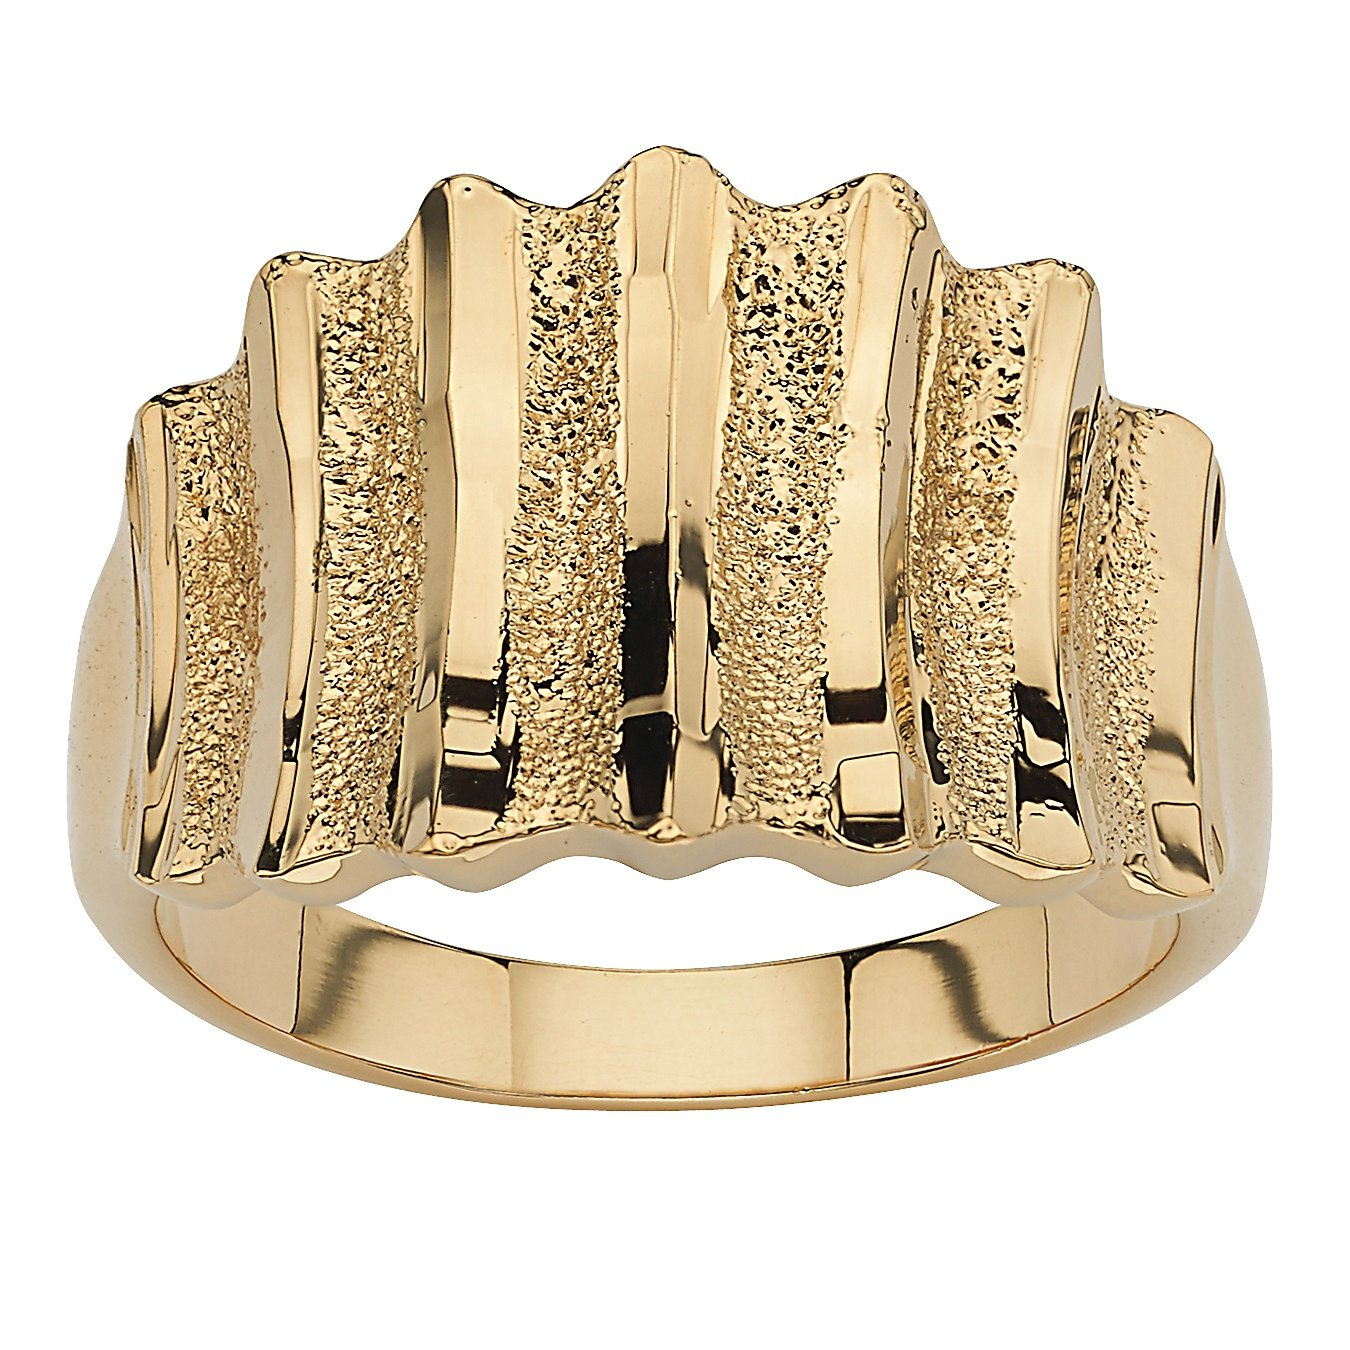 Palm Beach Jewelry 14k Yellow Gold-Plated Textured Concave Step-Top Ring Size 8